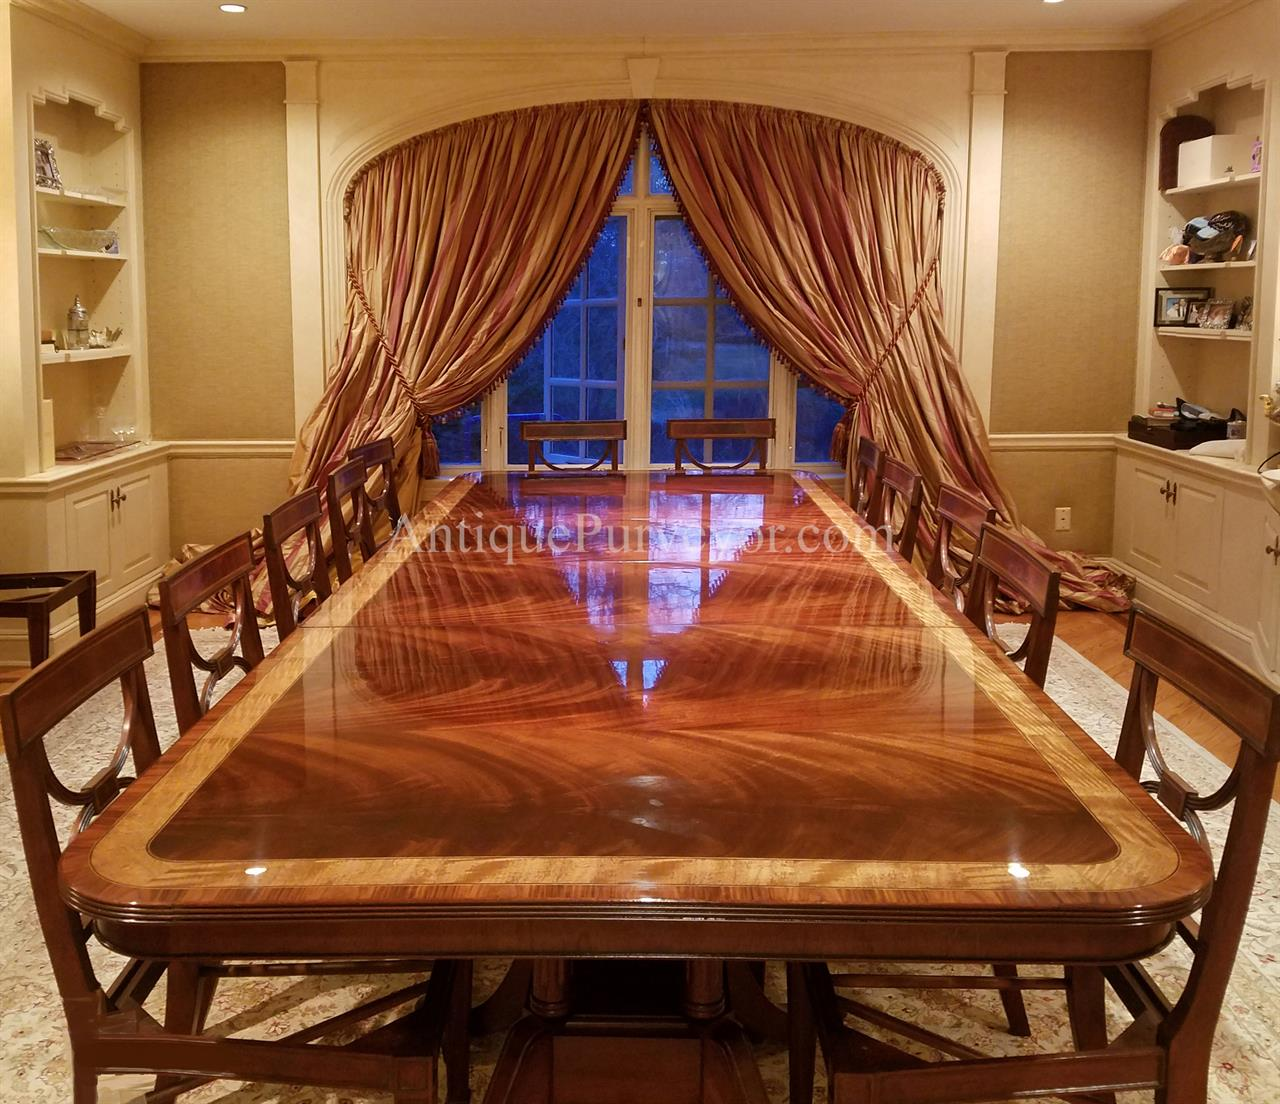 American Made Mahogany Dining Table With Leaves Seats 12 To 16 People